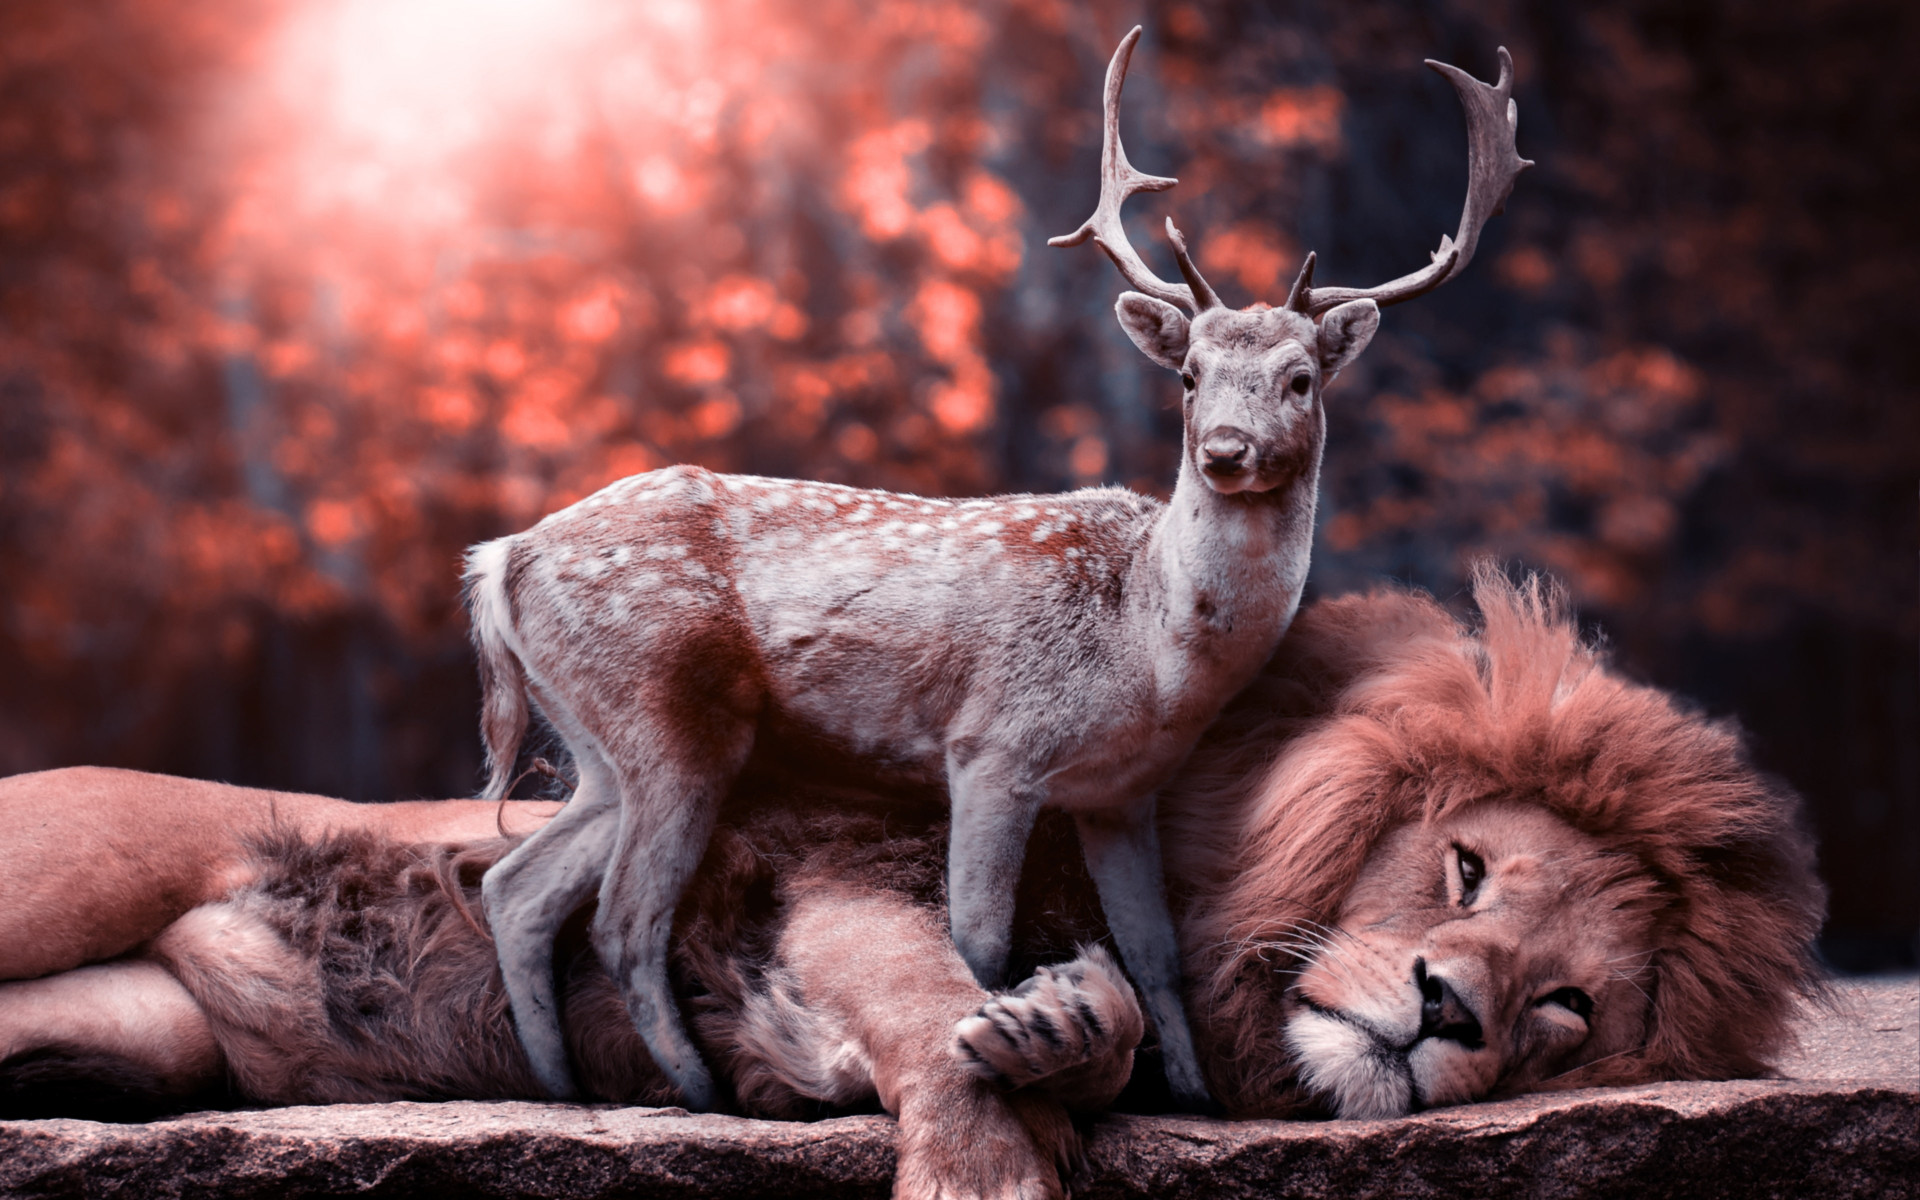 The lion and the deer wallpaper 1920x1200